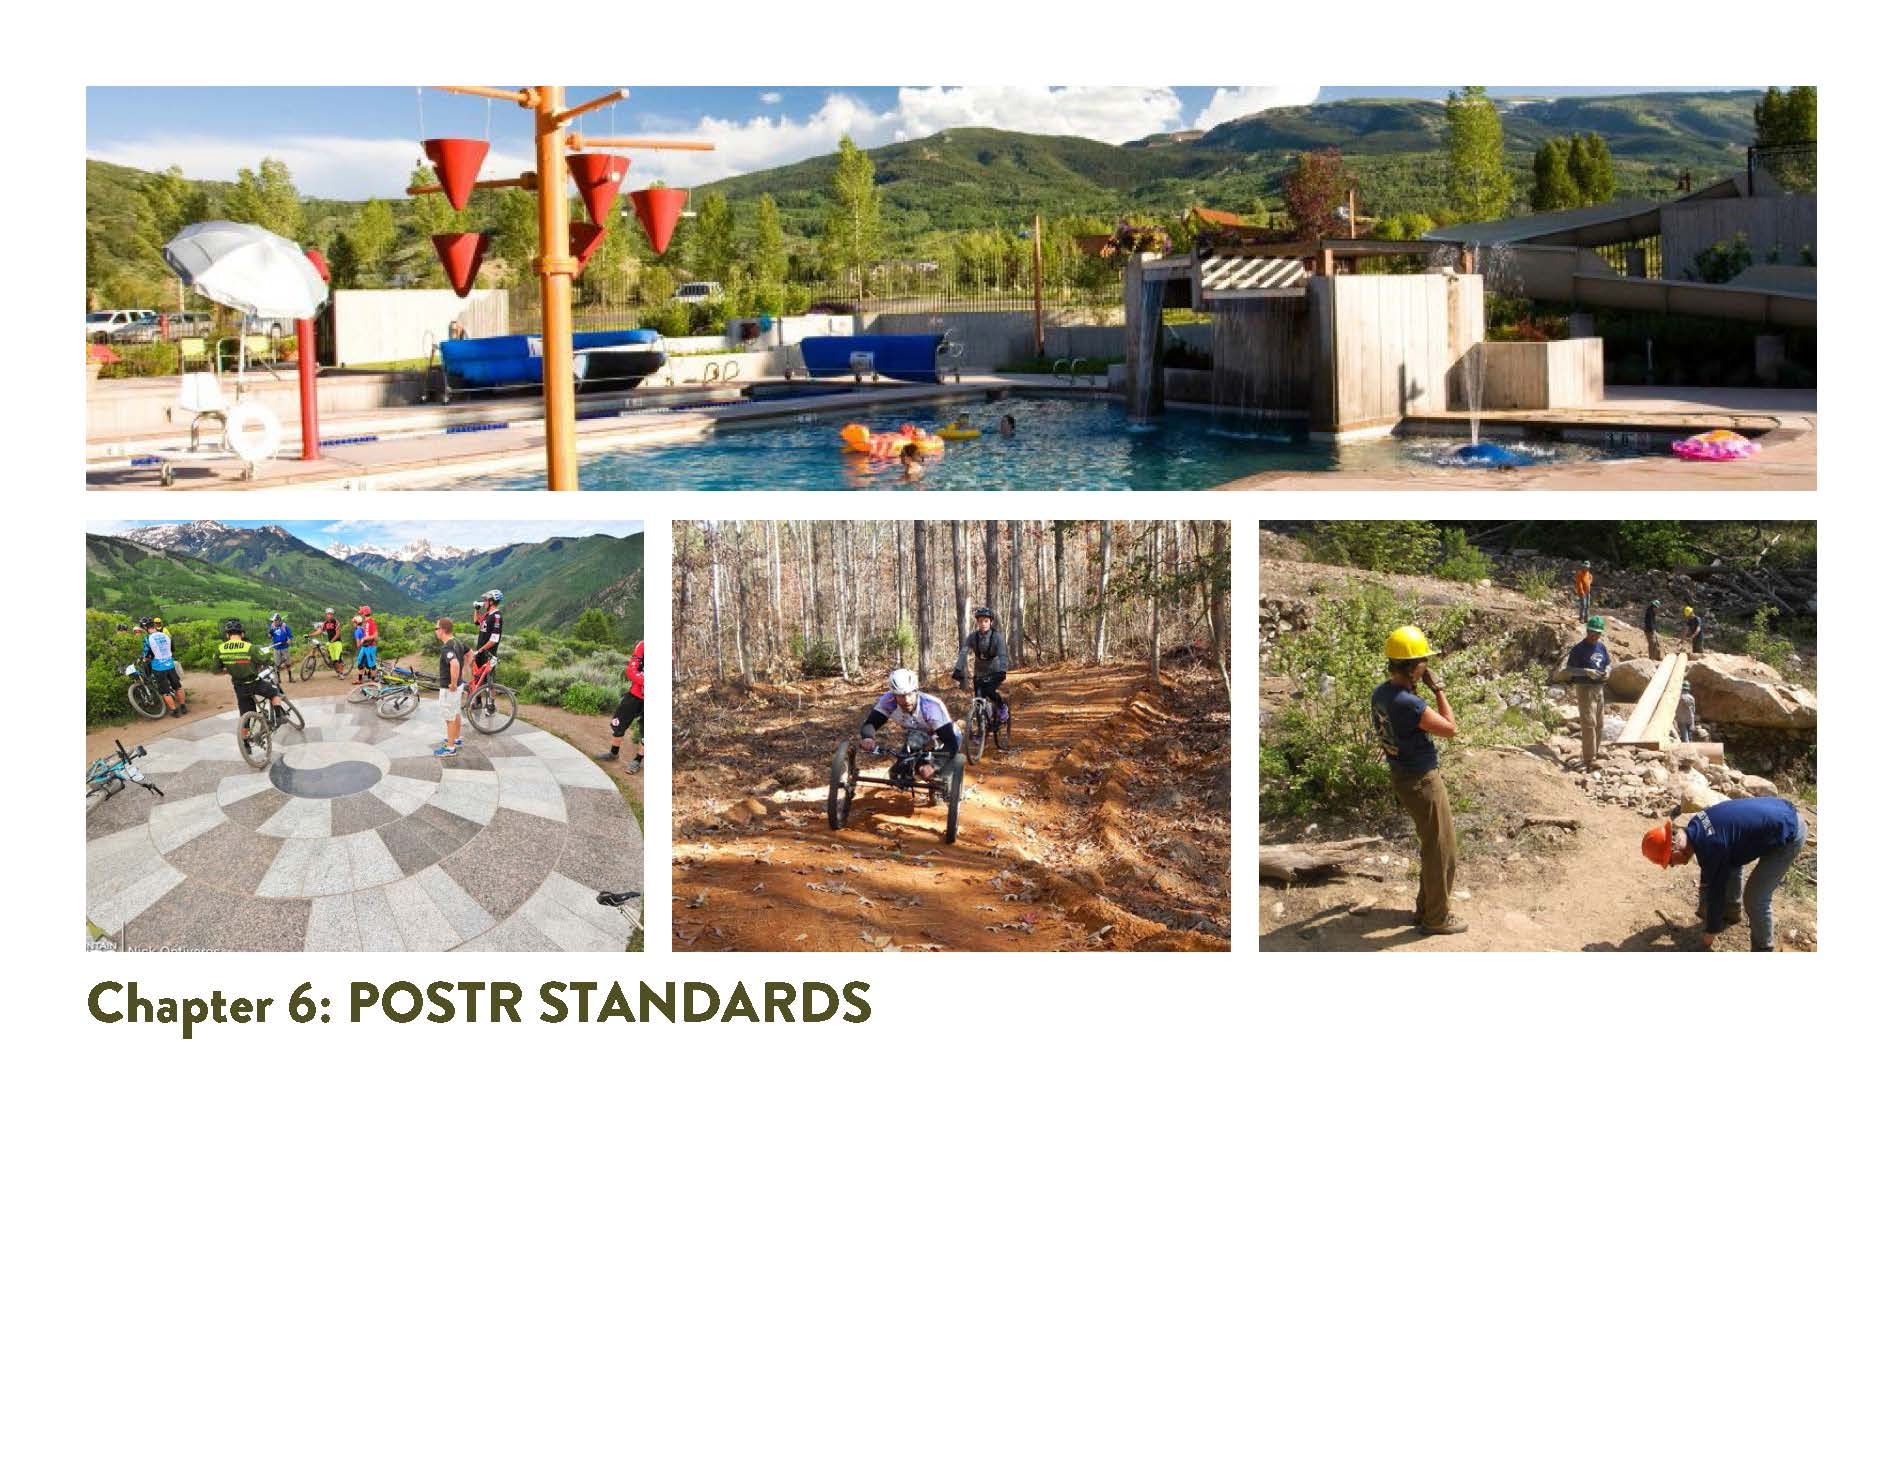 Chapter 6: POSTR Standards